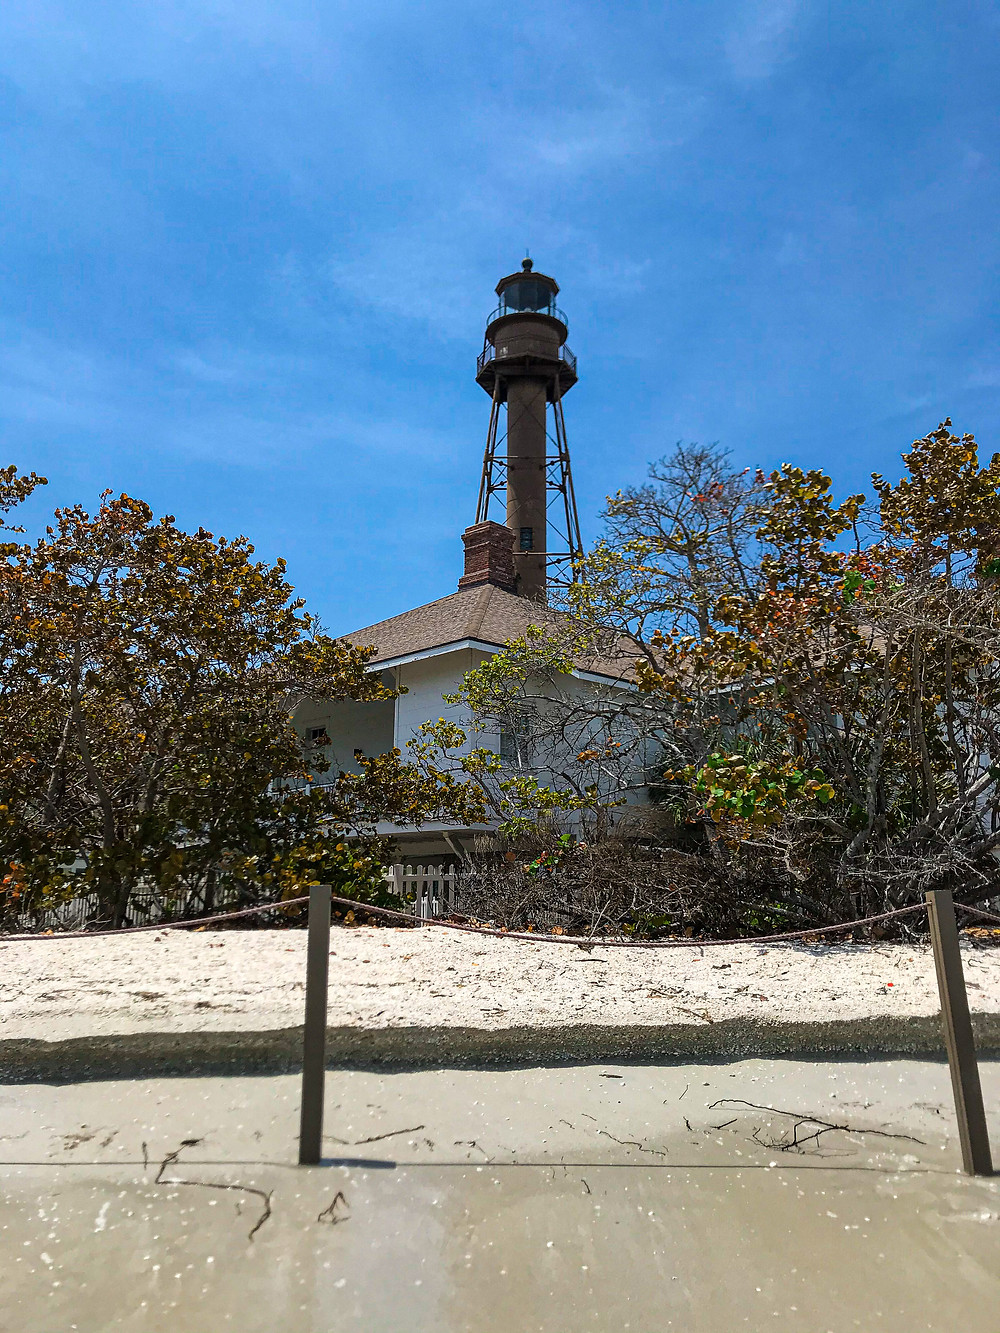 View of lighthouse from the beach at Sanibel Lighthouse beach park